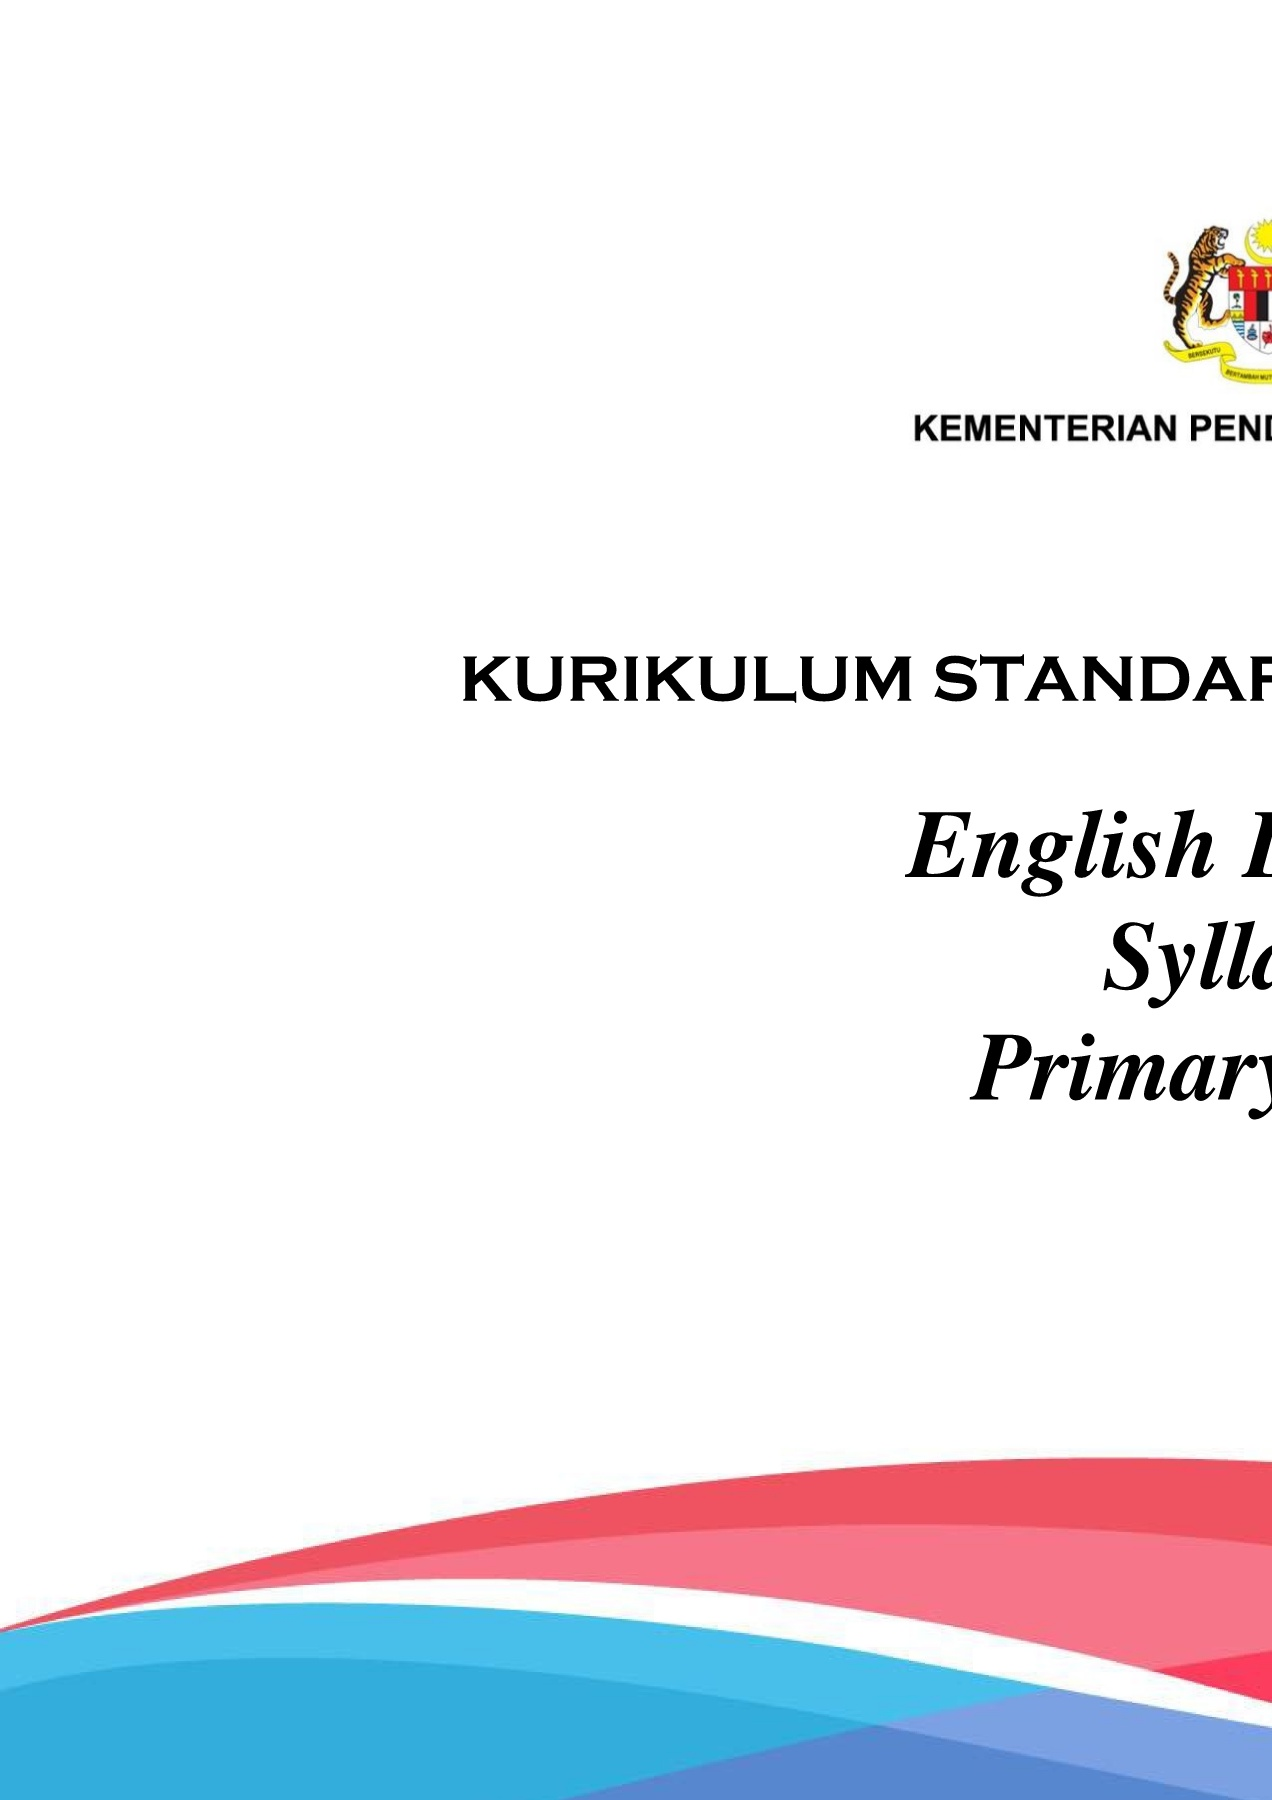 Primary Year 2 Syllabus Pages 1 - 27 - Text Version | AnyFlip